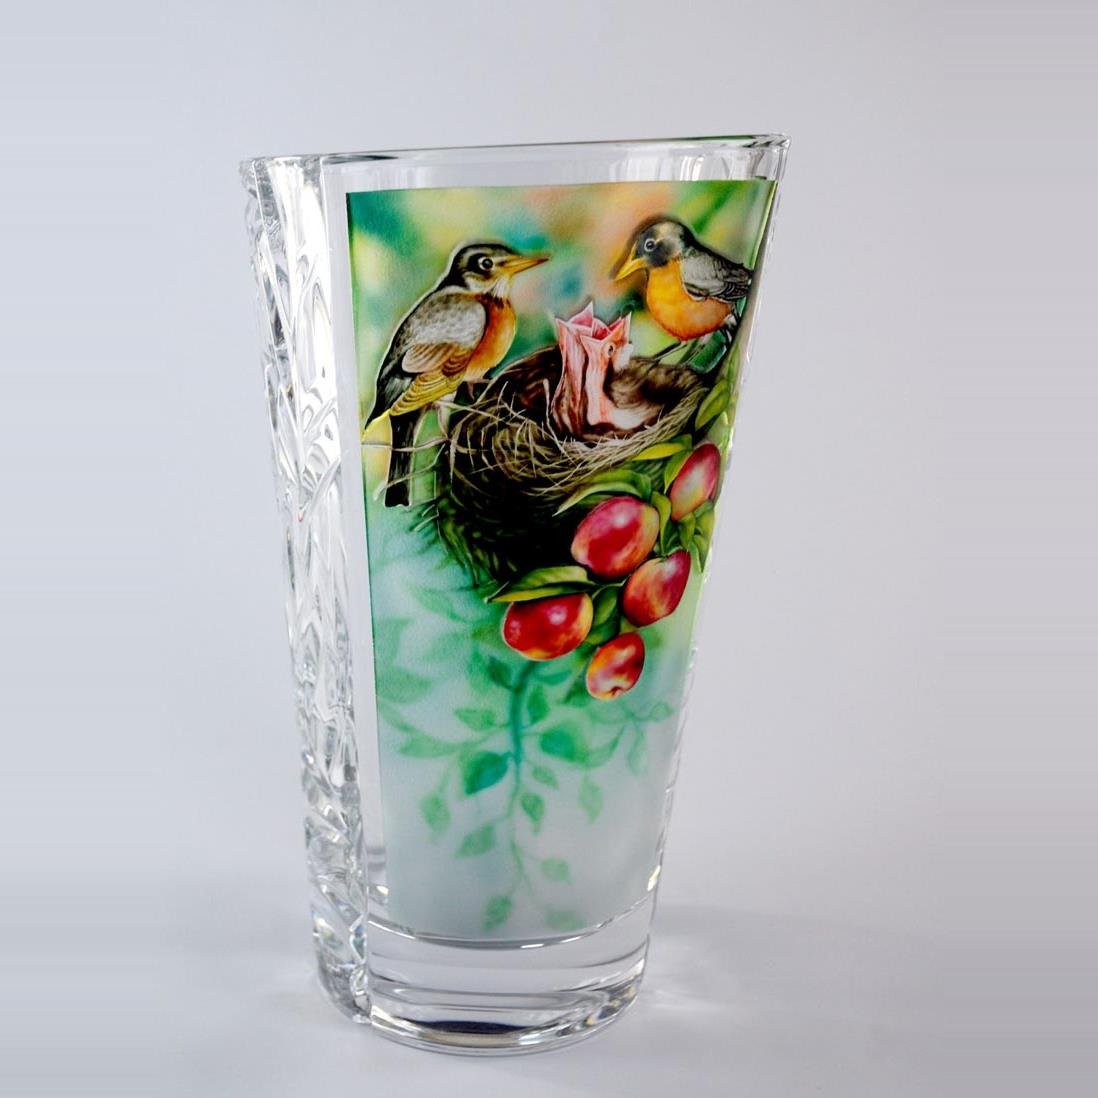 vase with 3d painting